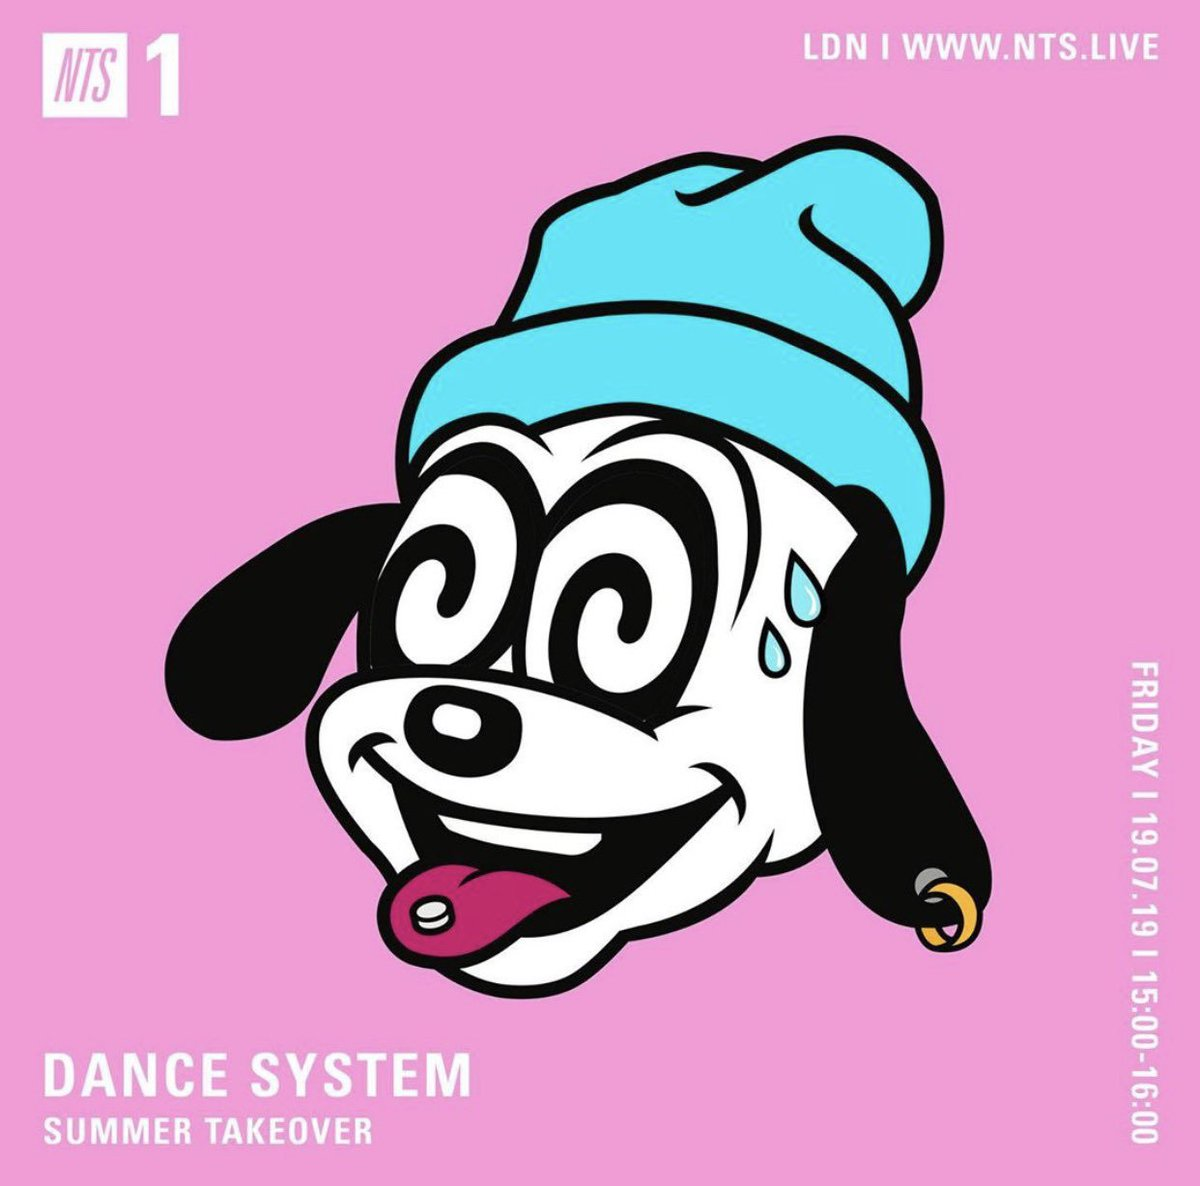 Exxxclusive new Dance System material and classic summer heaters for the next 60 mins - tune in: nts.live/1